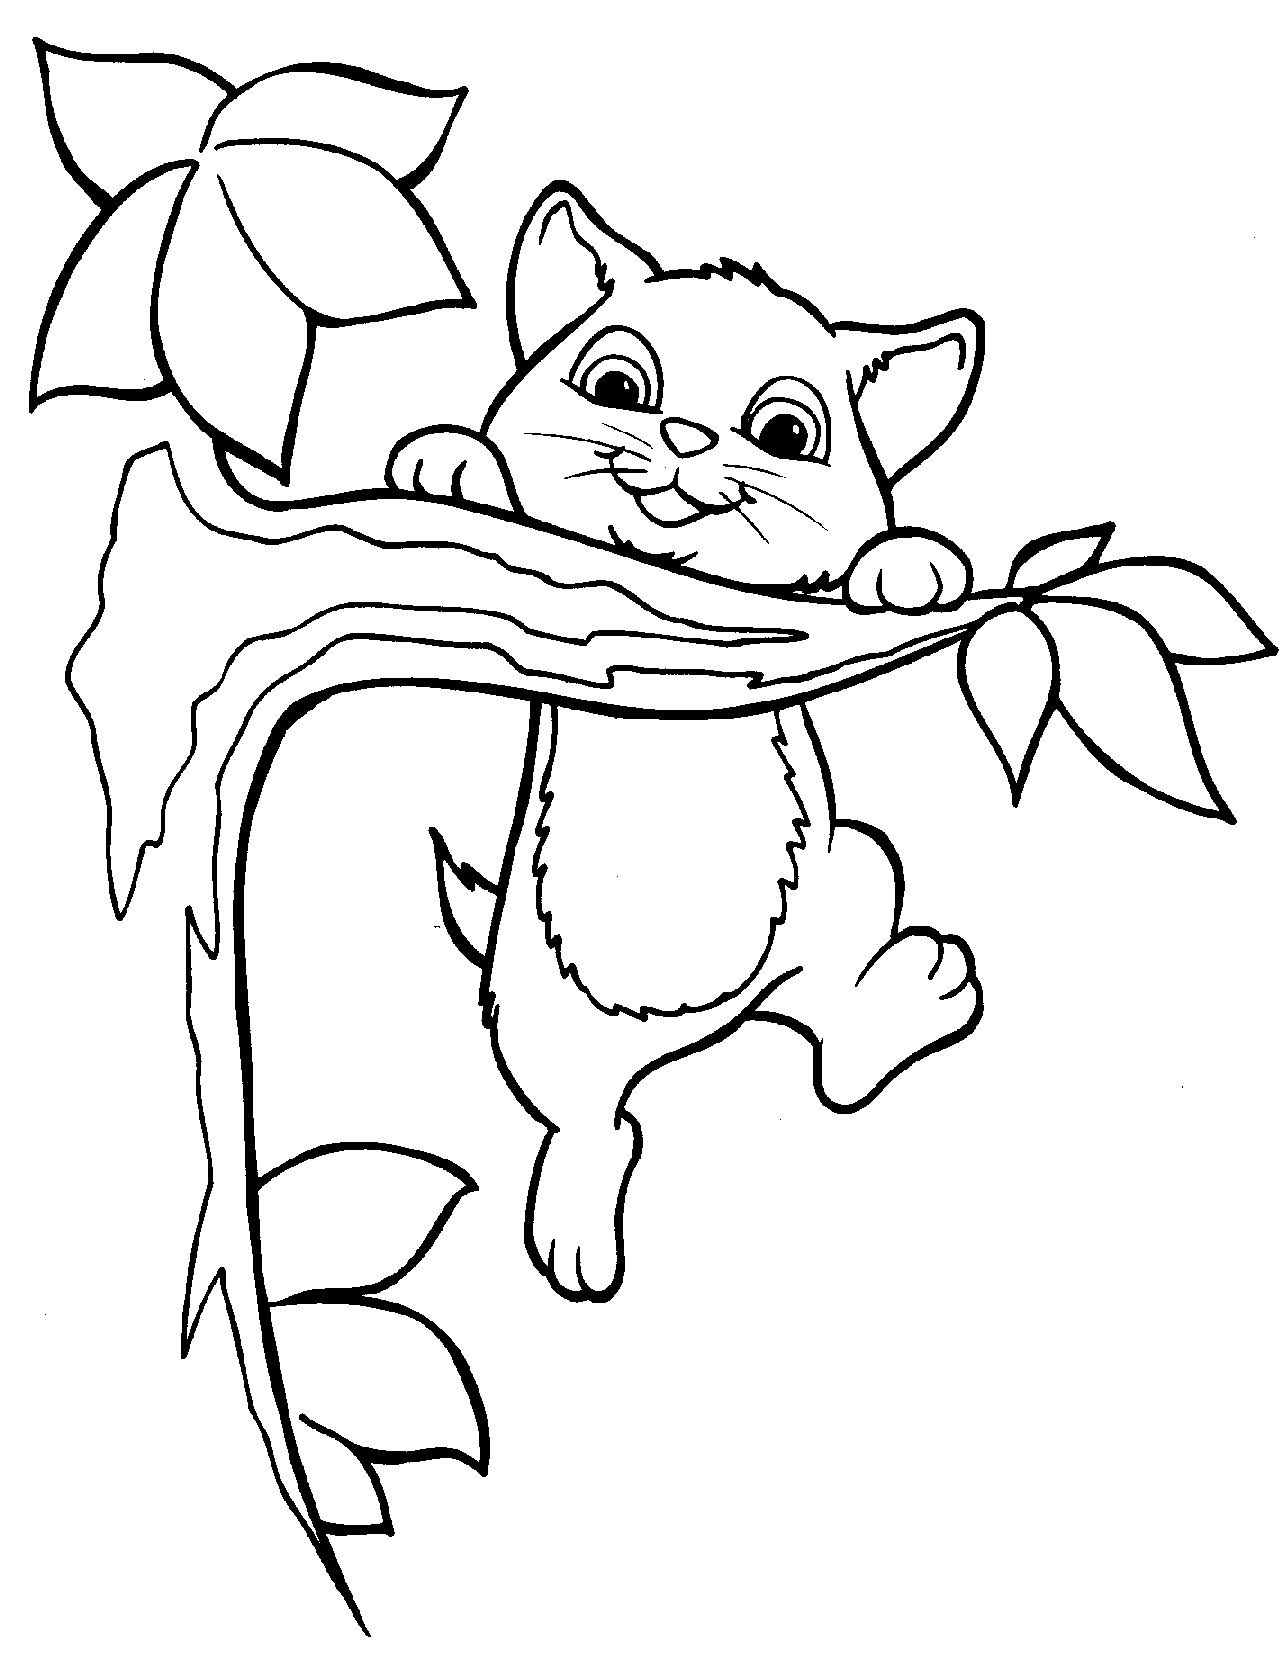 Coloring Page Kitten Free Coloring Pages Download | Xsibe pretty ...